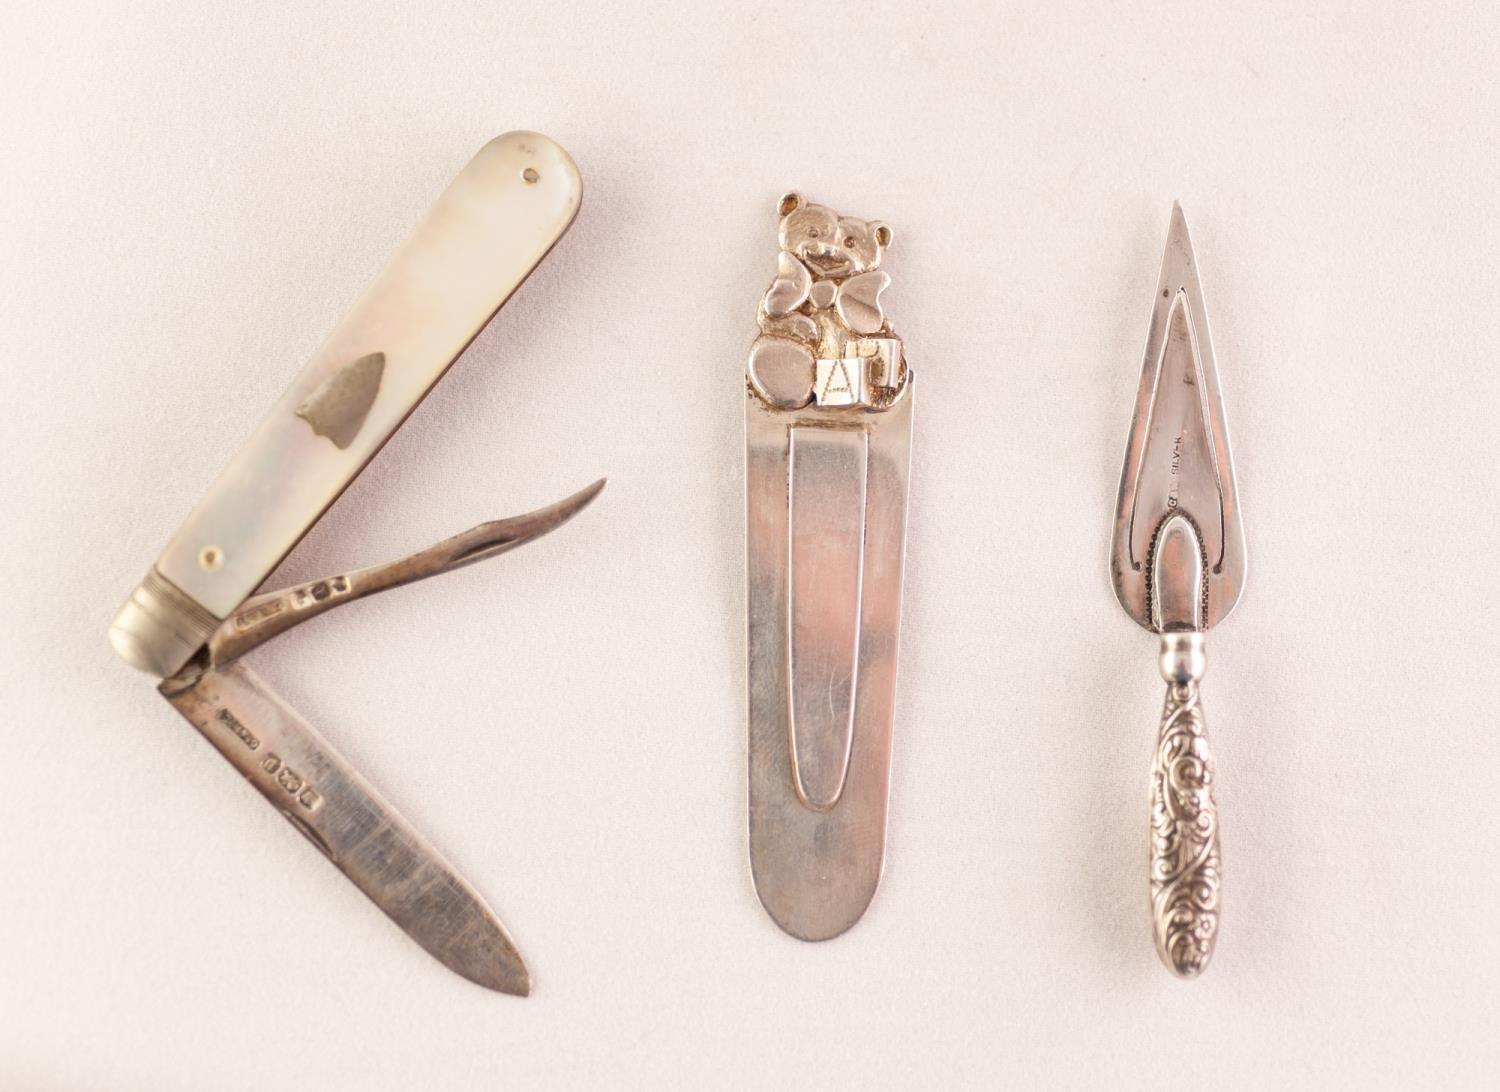 Lot 594 - SILVER AND MOTHER OF PEARL CLASP FRUIT KNIFE with two blades, Sheffield 1907 a TROWEL PATTERN BOOK